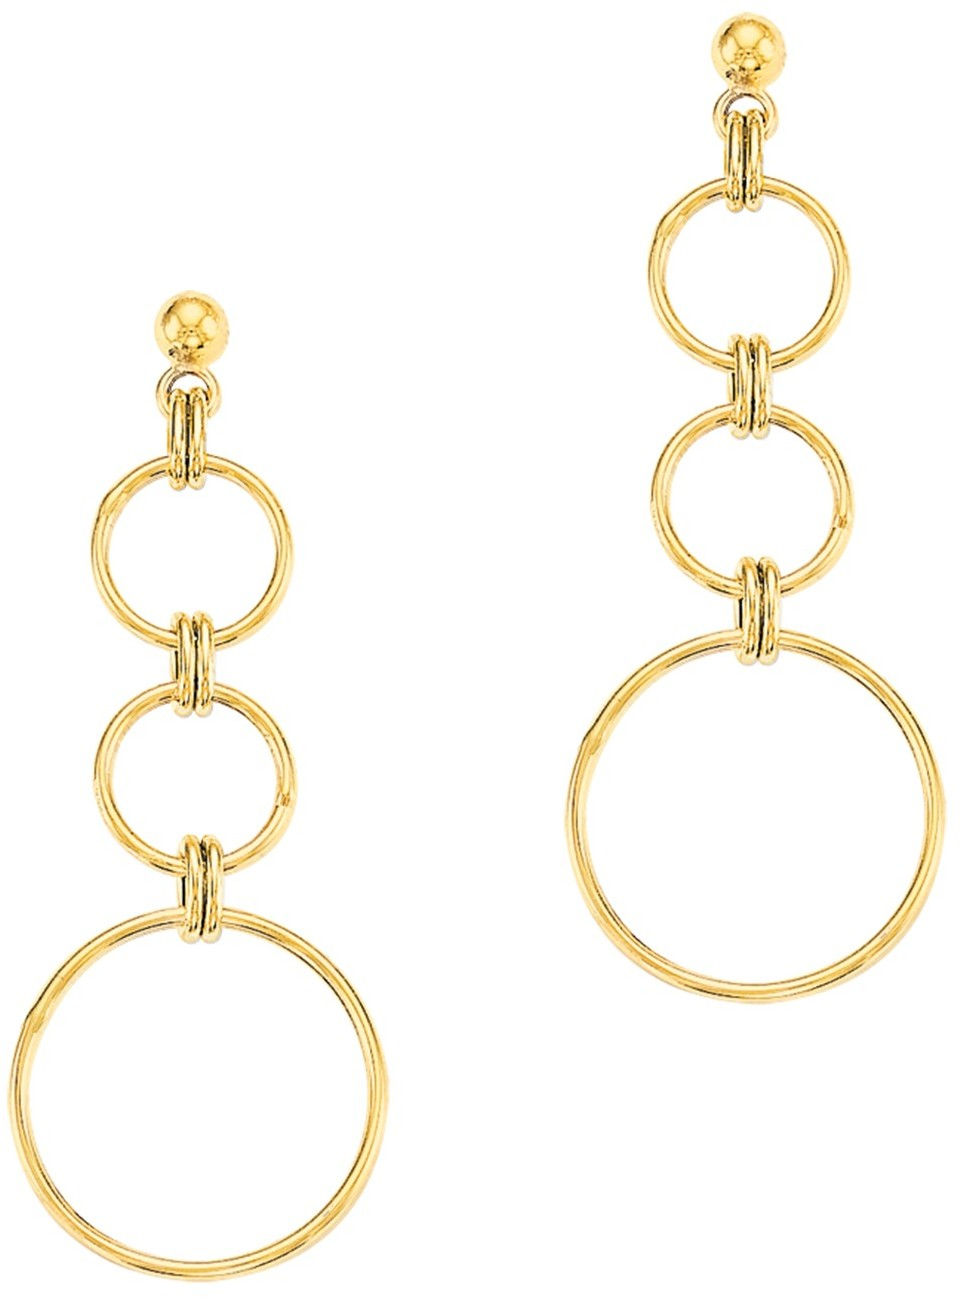 10K Yellow Gold Polished 3 Concentric Circle Dangle Earrings